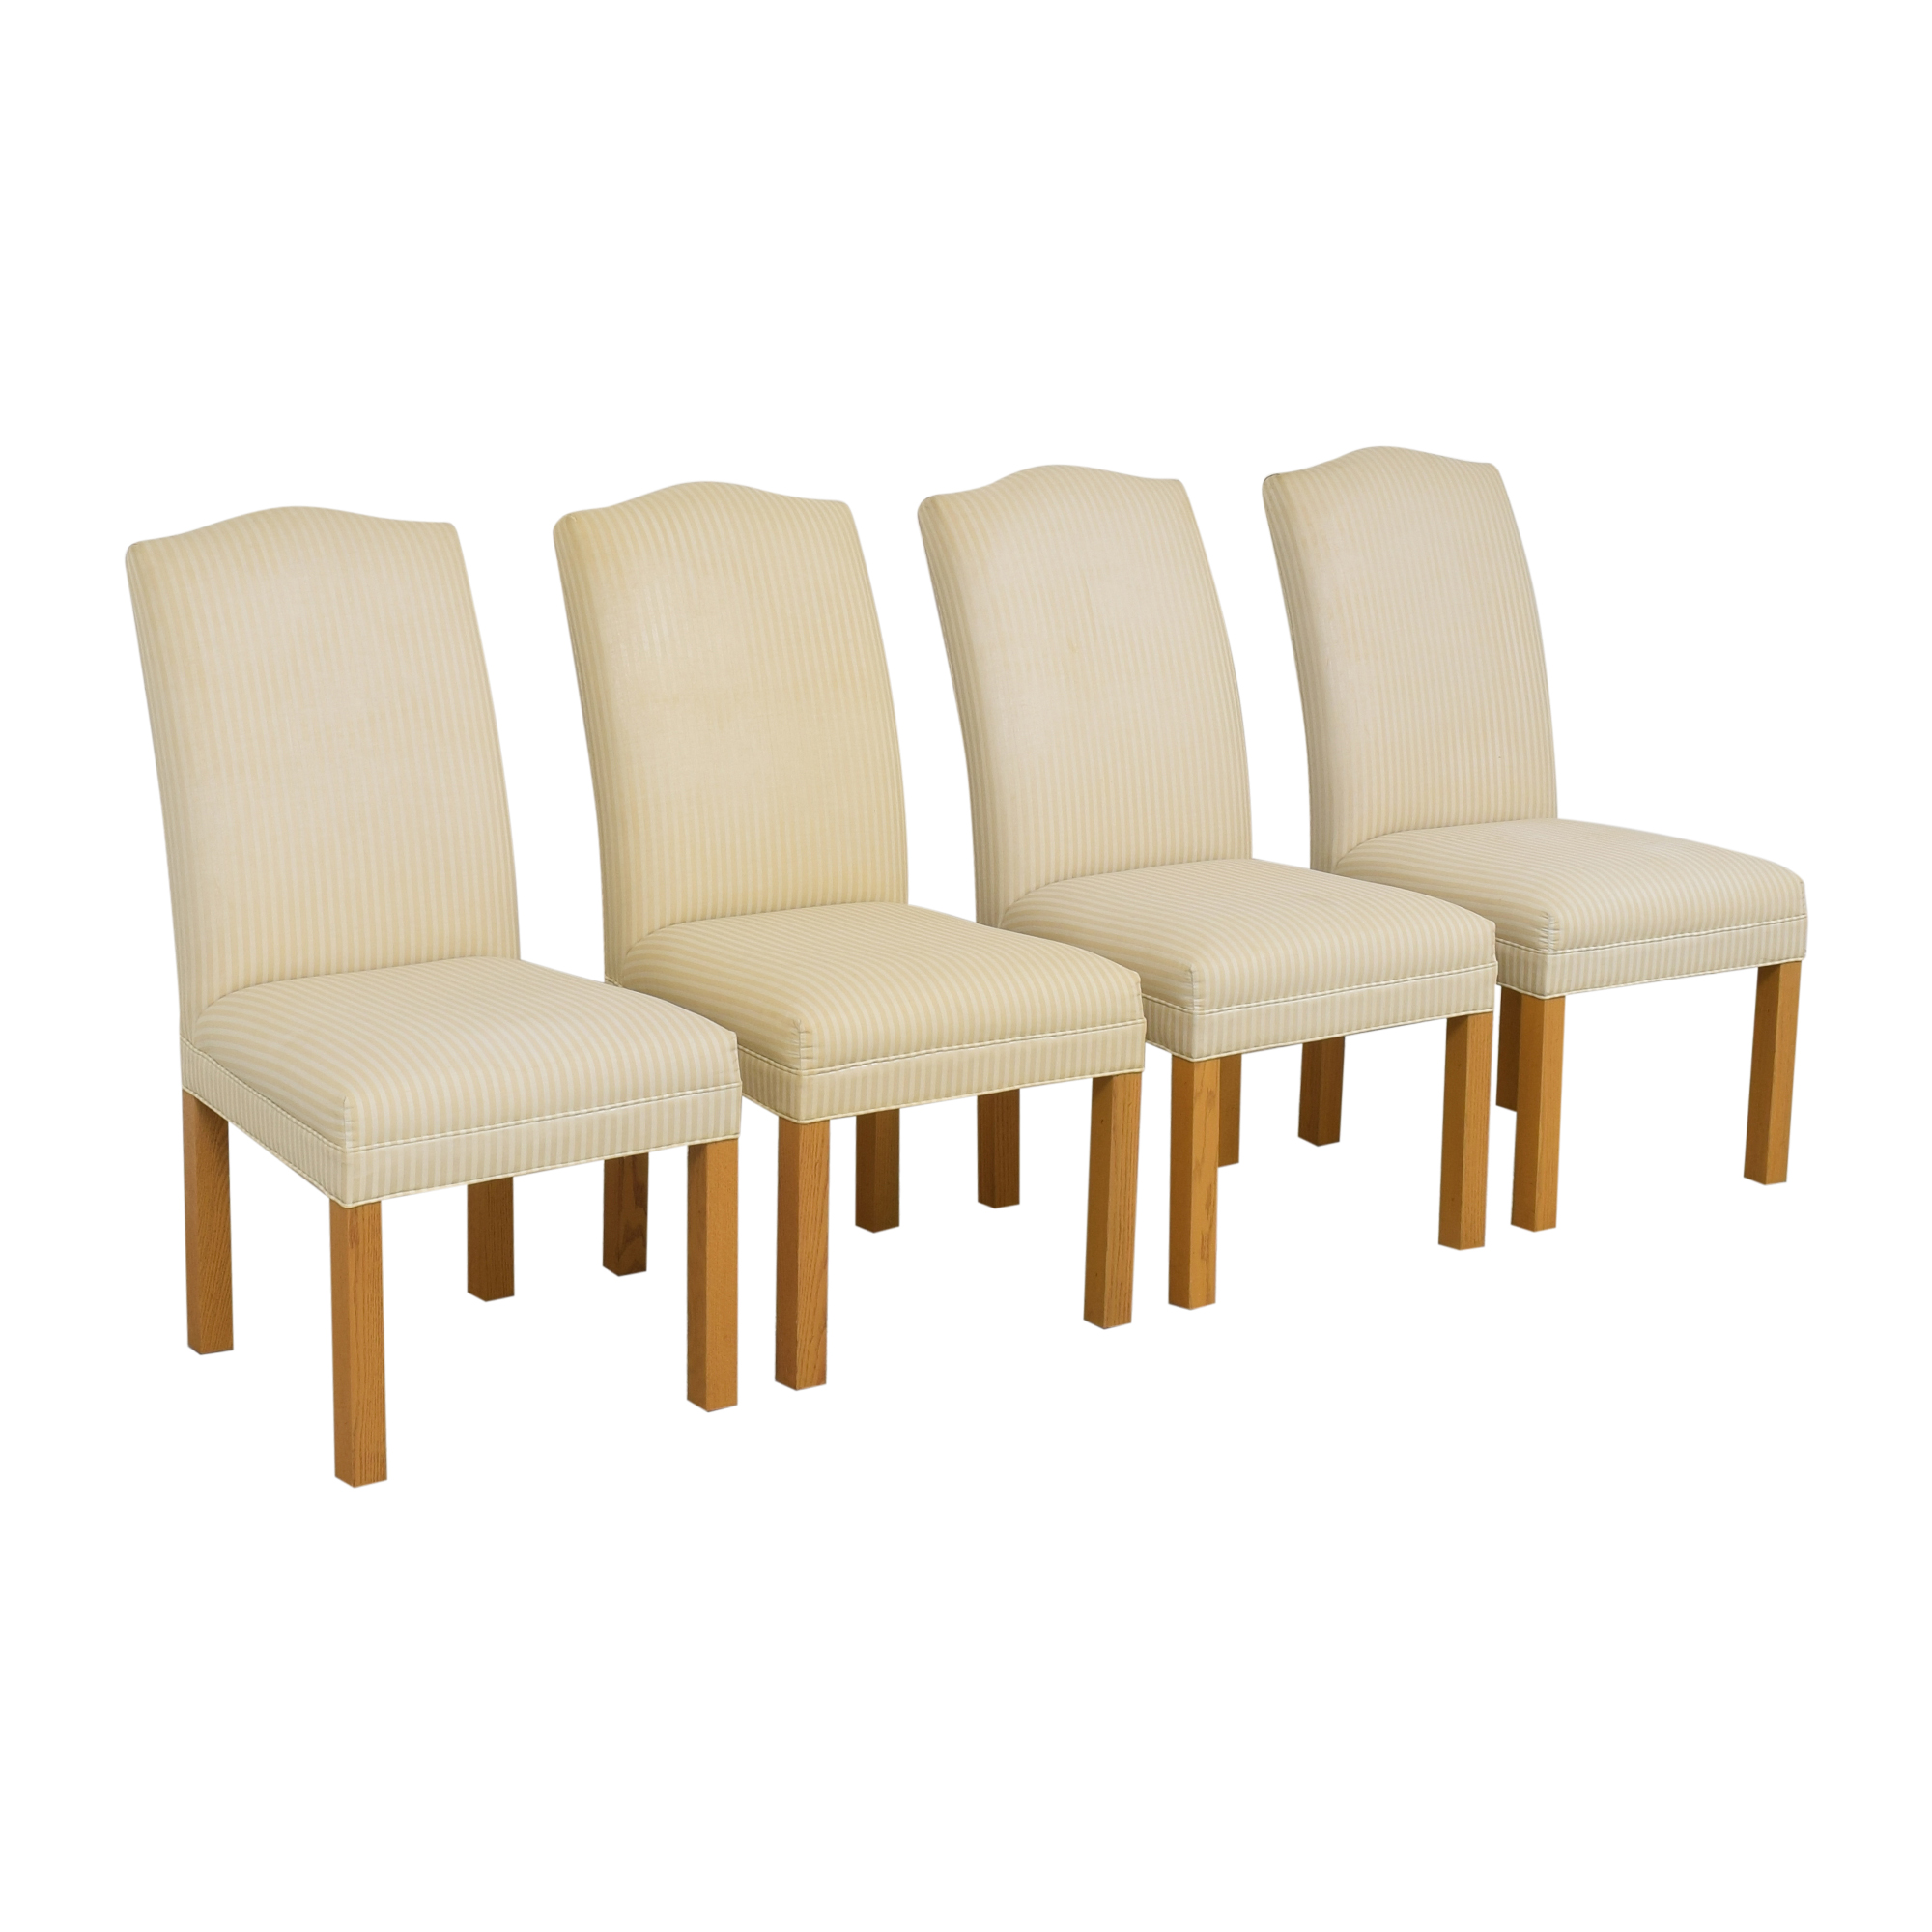 buy Lane Furniture Lane Furniture Upholstered Dining Side Chairs online